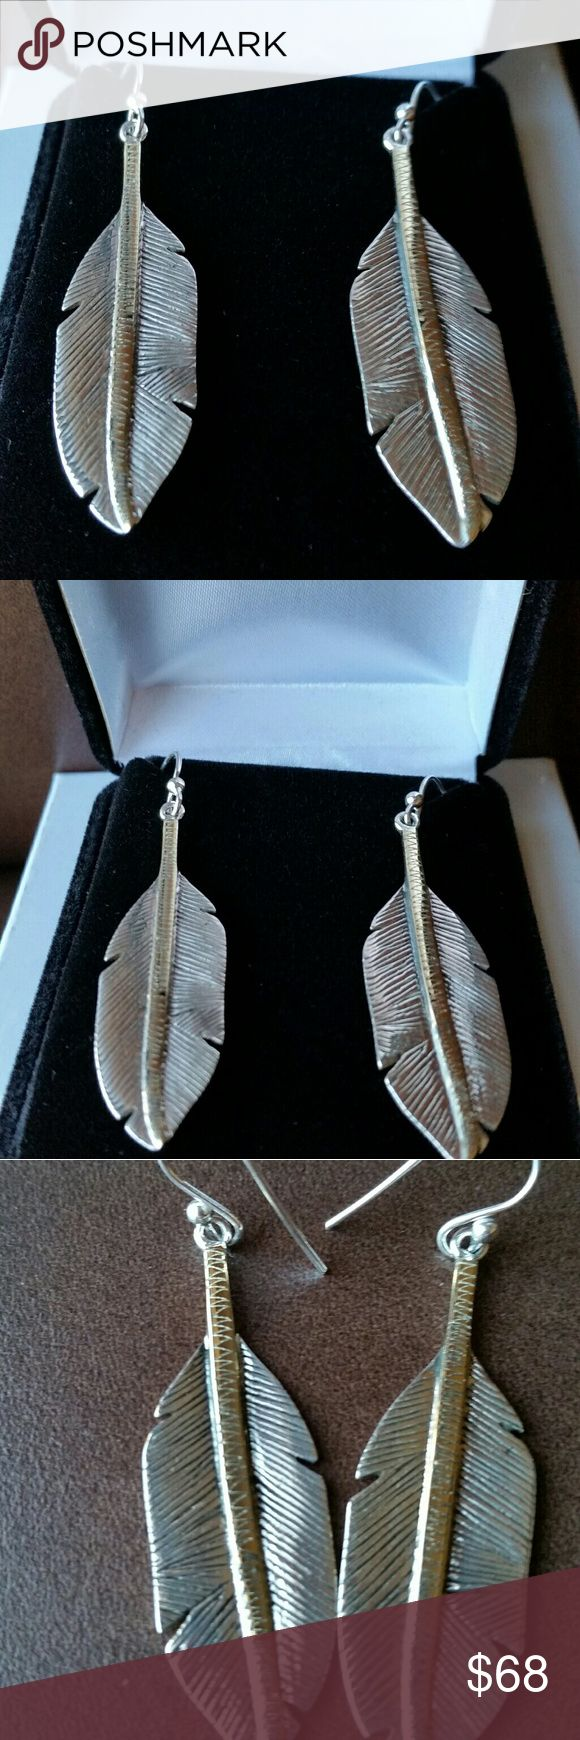 NEW .925 silver feather earrings w 14K gold accent Oxidized sterling silver with 14K plated over sterling silver middle accent. Comes in beautiful velvet box perfect for gifting and storage. Price is firm unless bundled. Jewelry Earrings